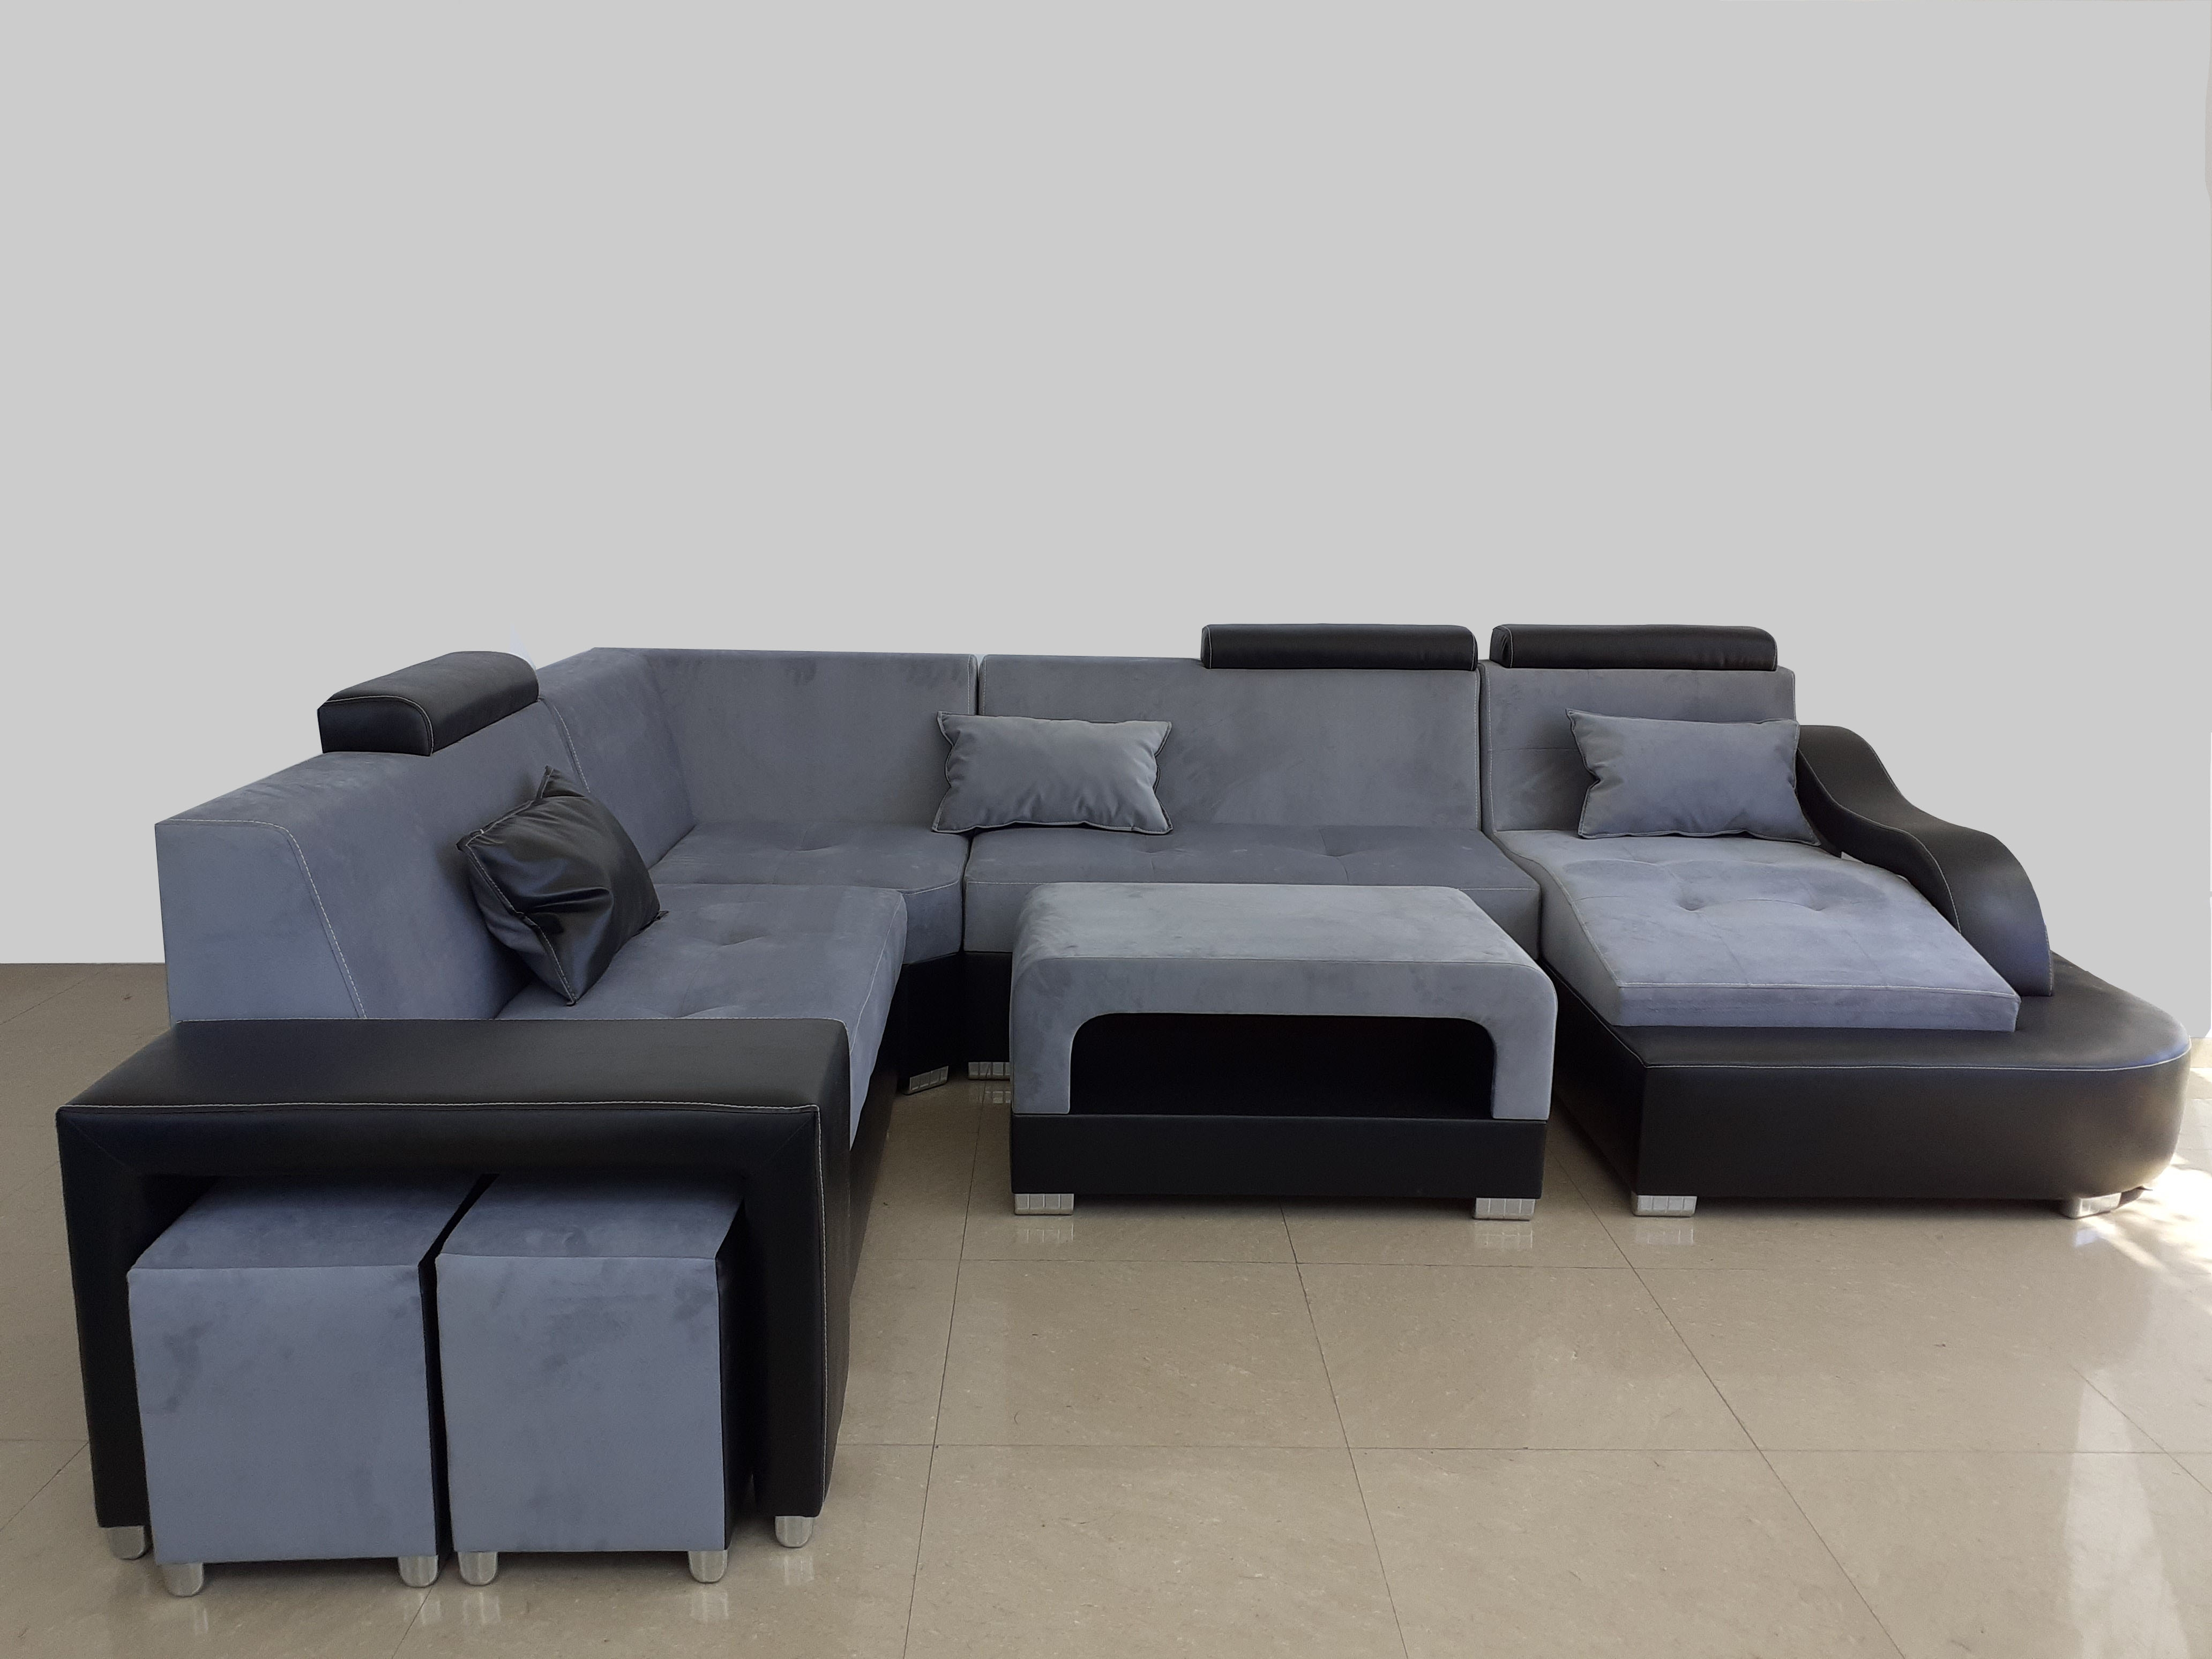 Coltar New York in forma de U, Gri+Negru 350x160-270x99